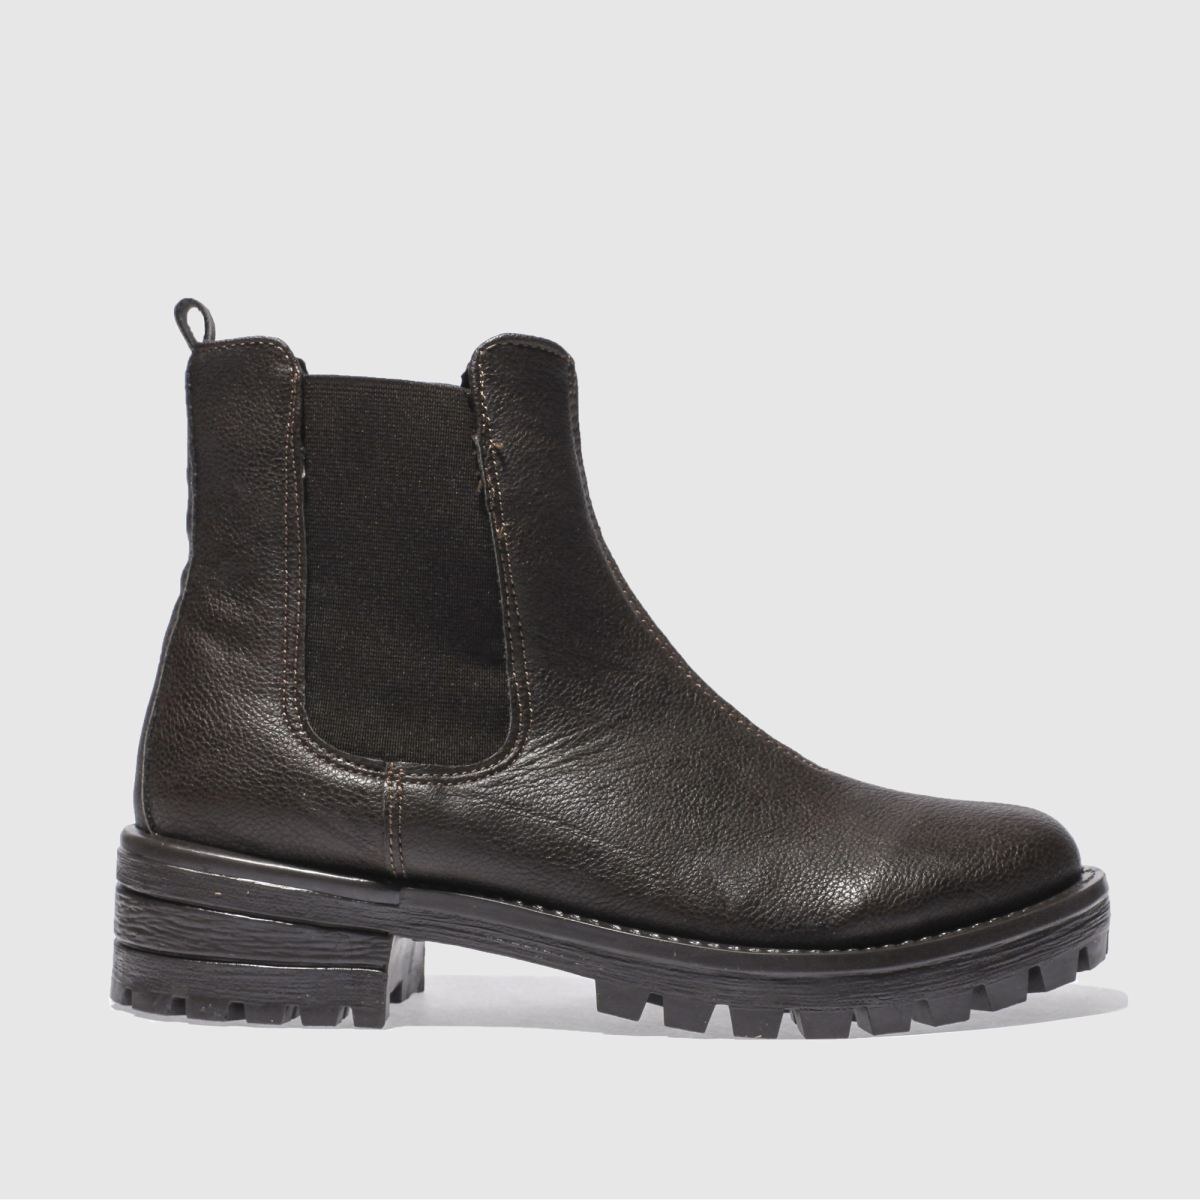 schuh dark brown eyes open boots